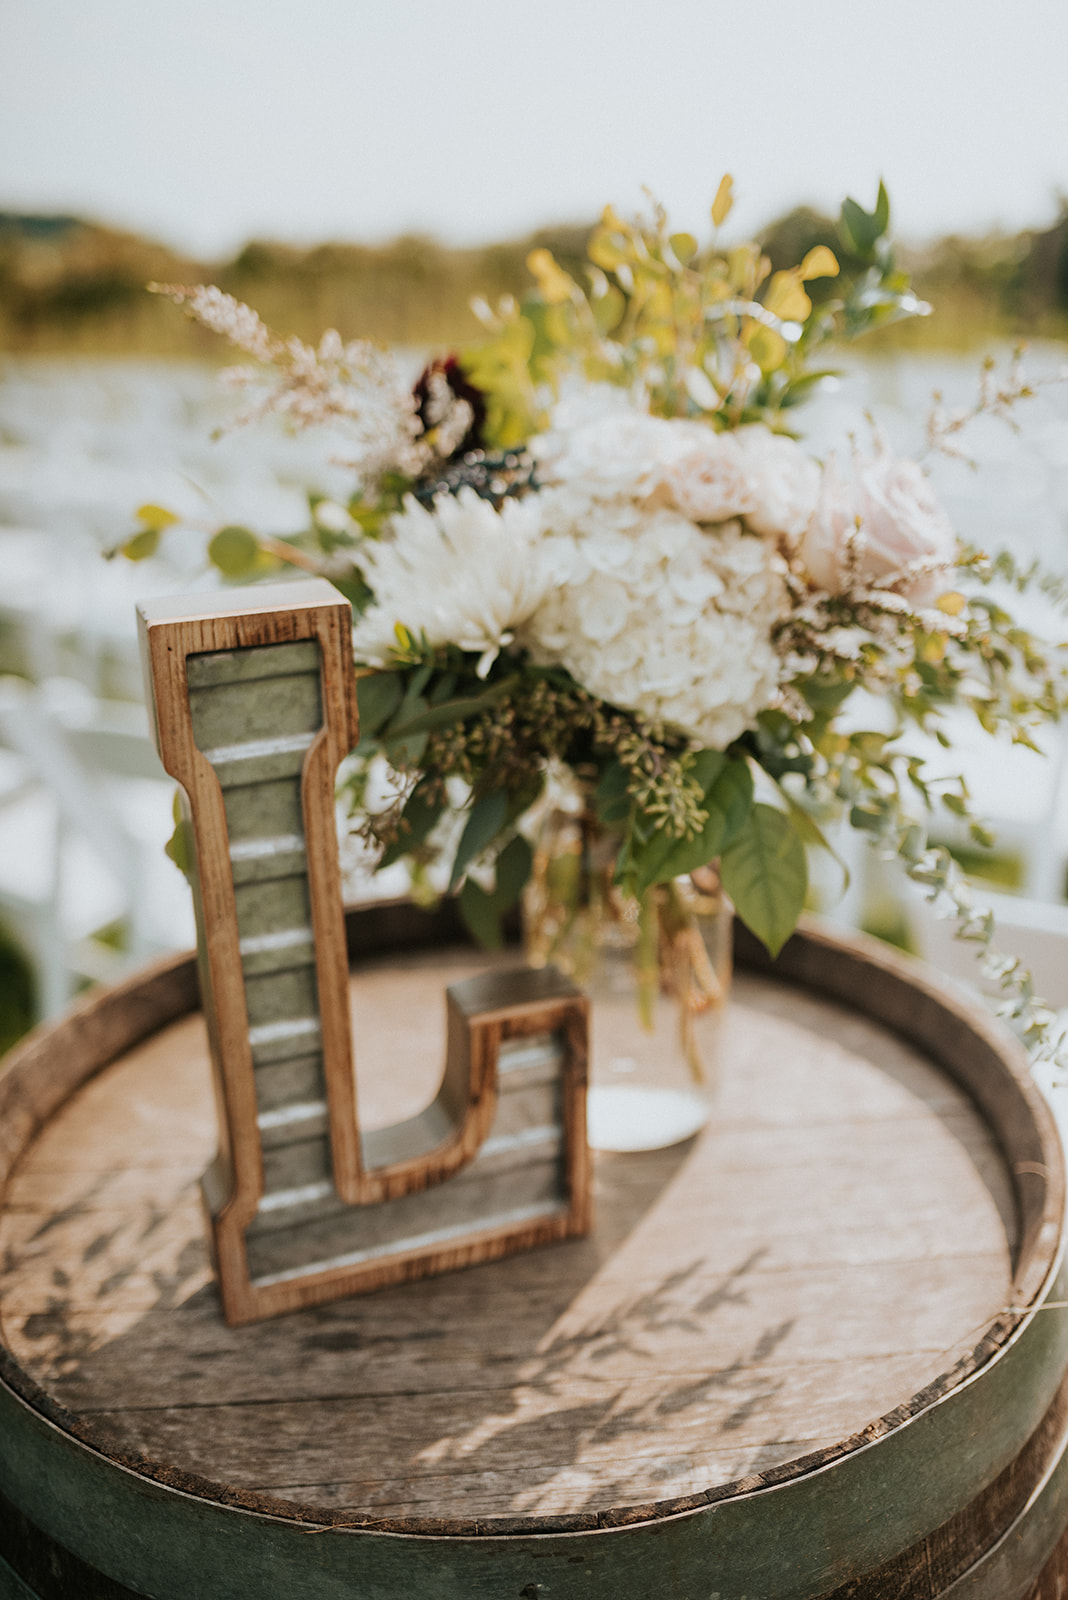 overthevineswisconsinwedding_0471.jpg